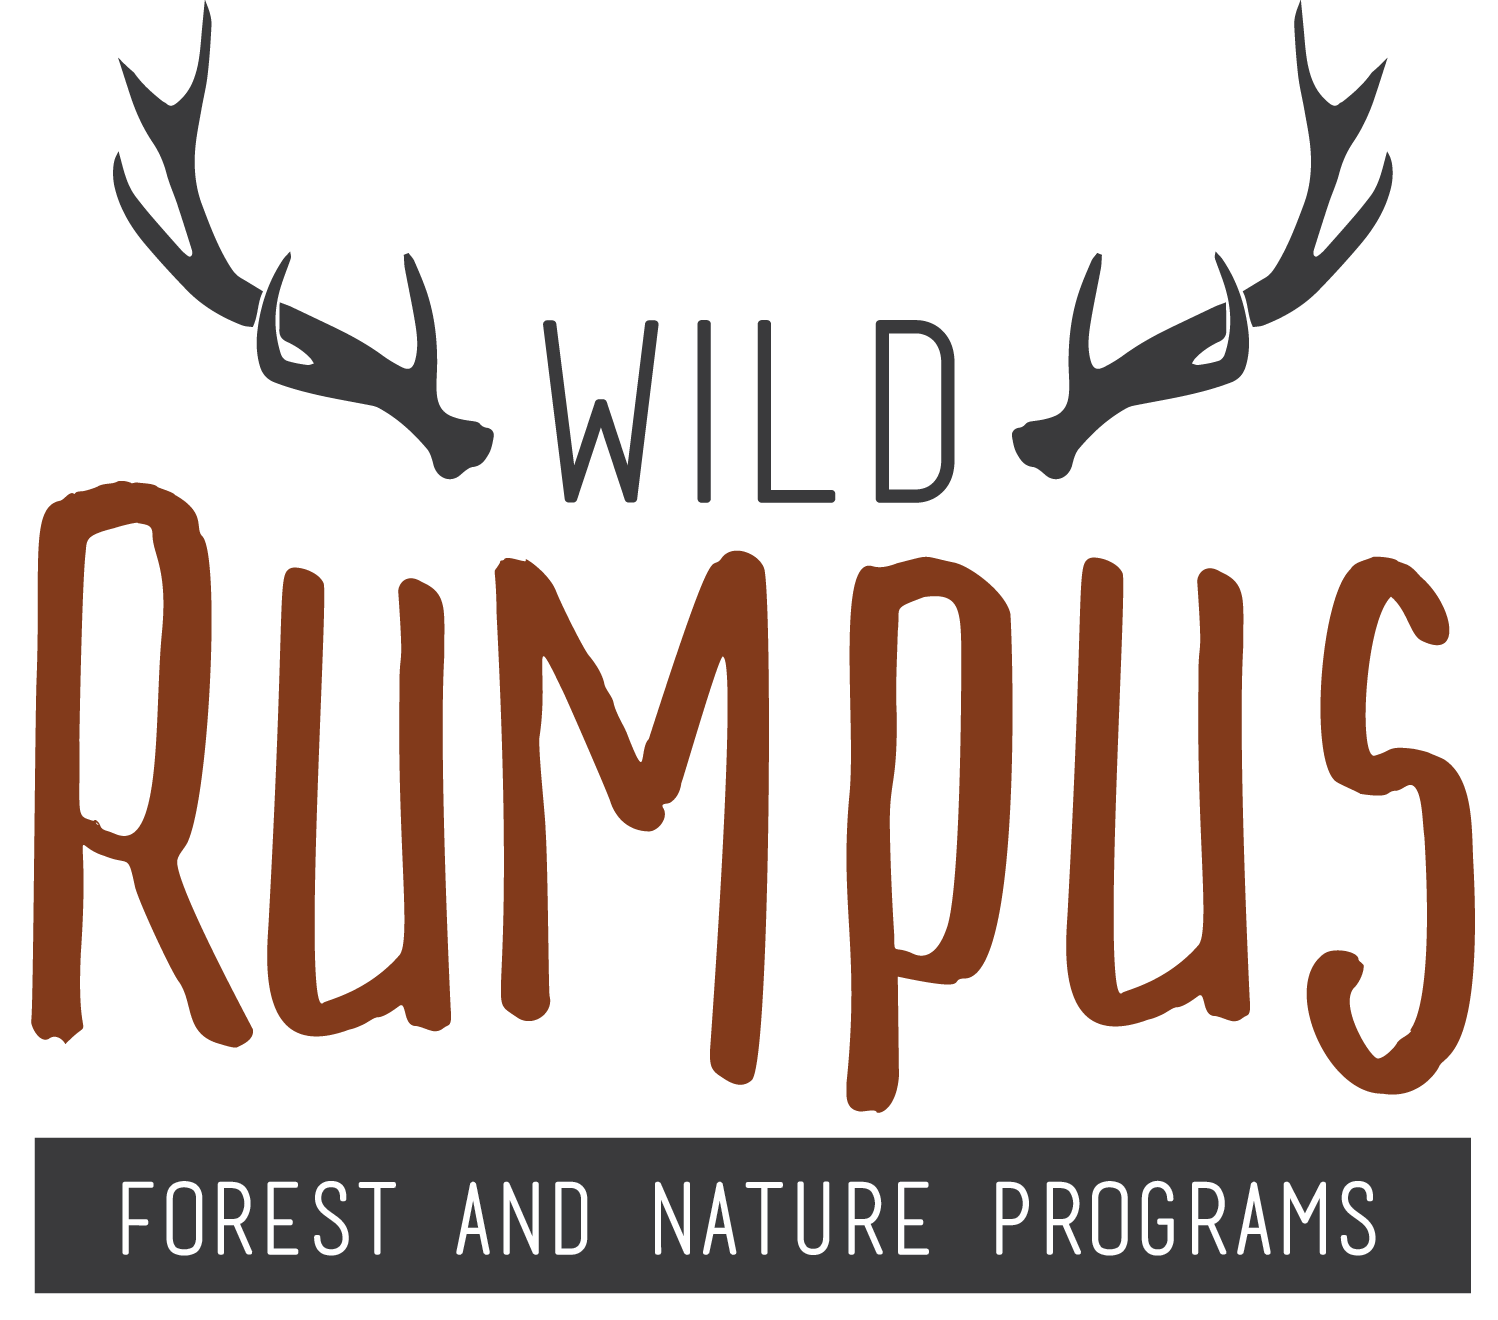 Wild Rumpus Forest and Nature Programs